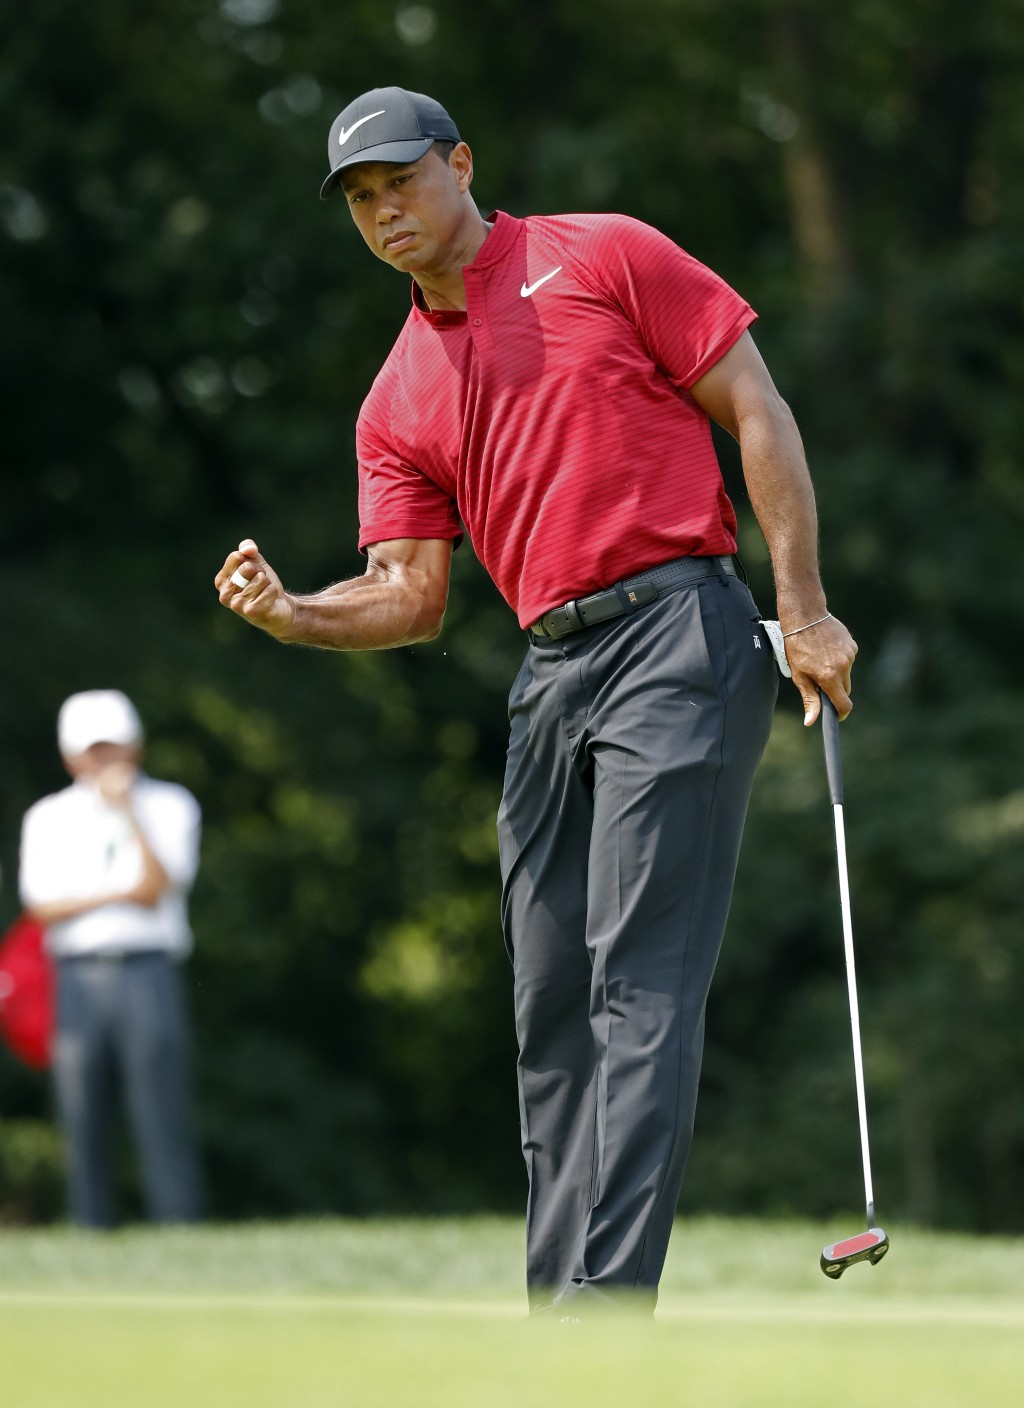 Tiger Woods reacts to sinking a birdie putt on the ninth green during the final round of the PGA Championship golf tournament at Bellerive Country Clu...